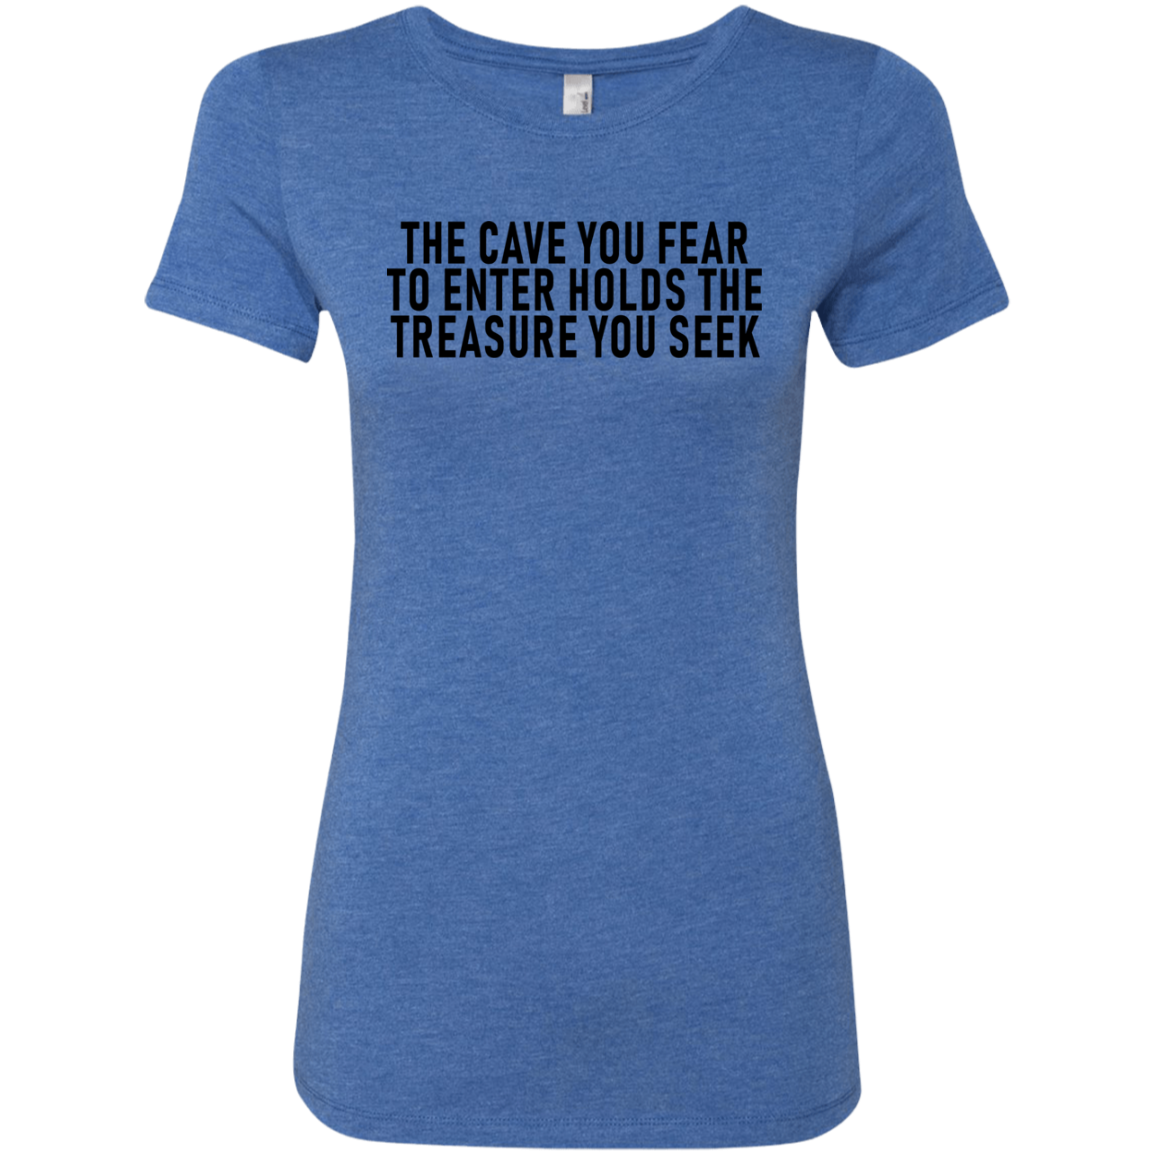 The Cave You Fear To Enter Holds The Treasure You Seek Women's Classic Tee